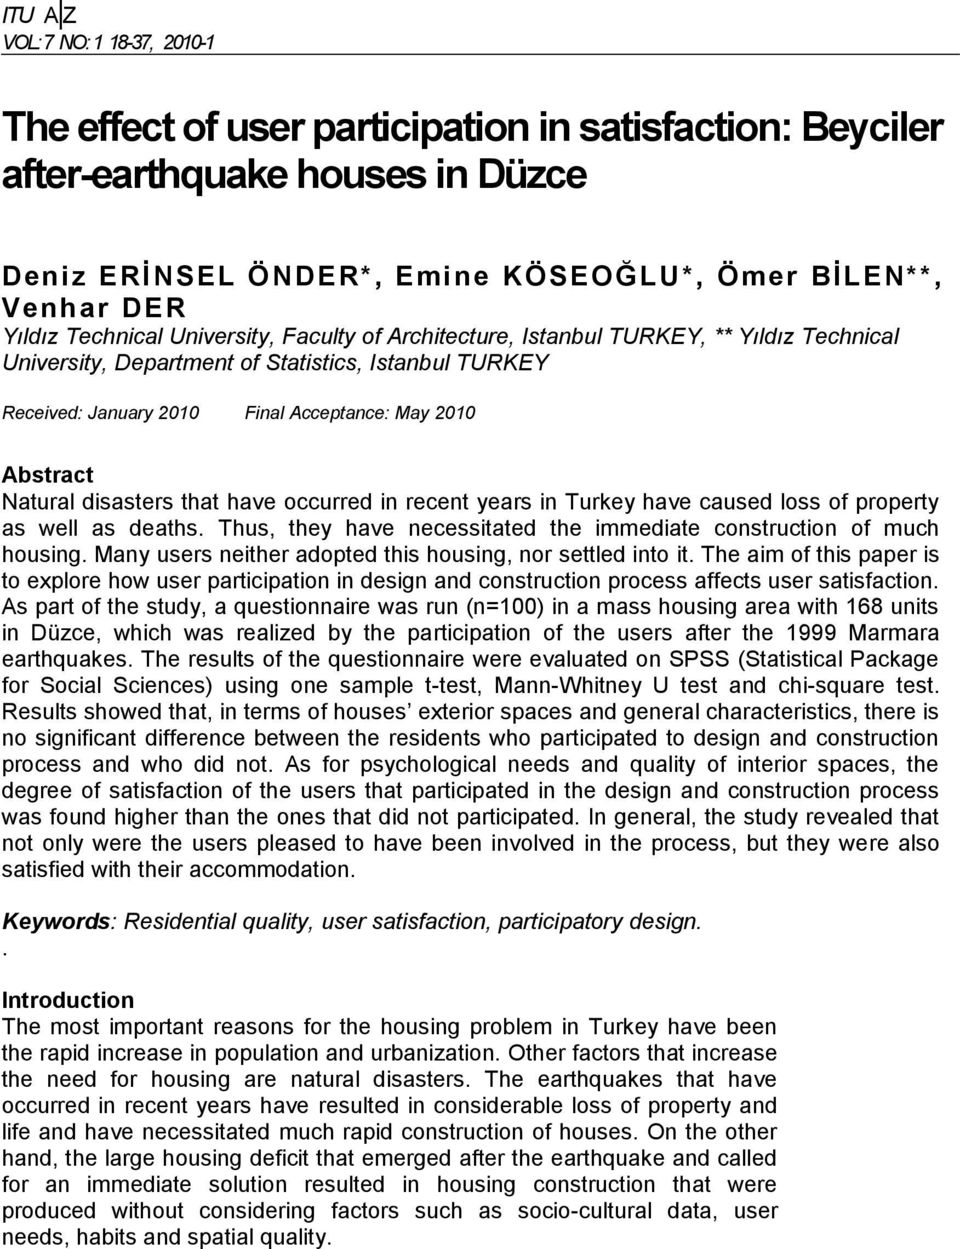 Natural disasters that have occurred in recent years in Turkey have caused loss of property as well as deaths. Thus, they have necessitated the immediate construction of much housing.